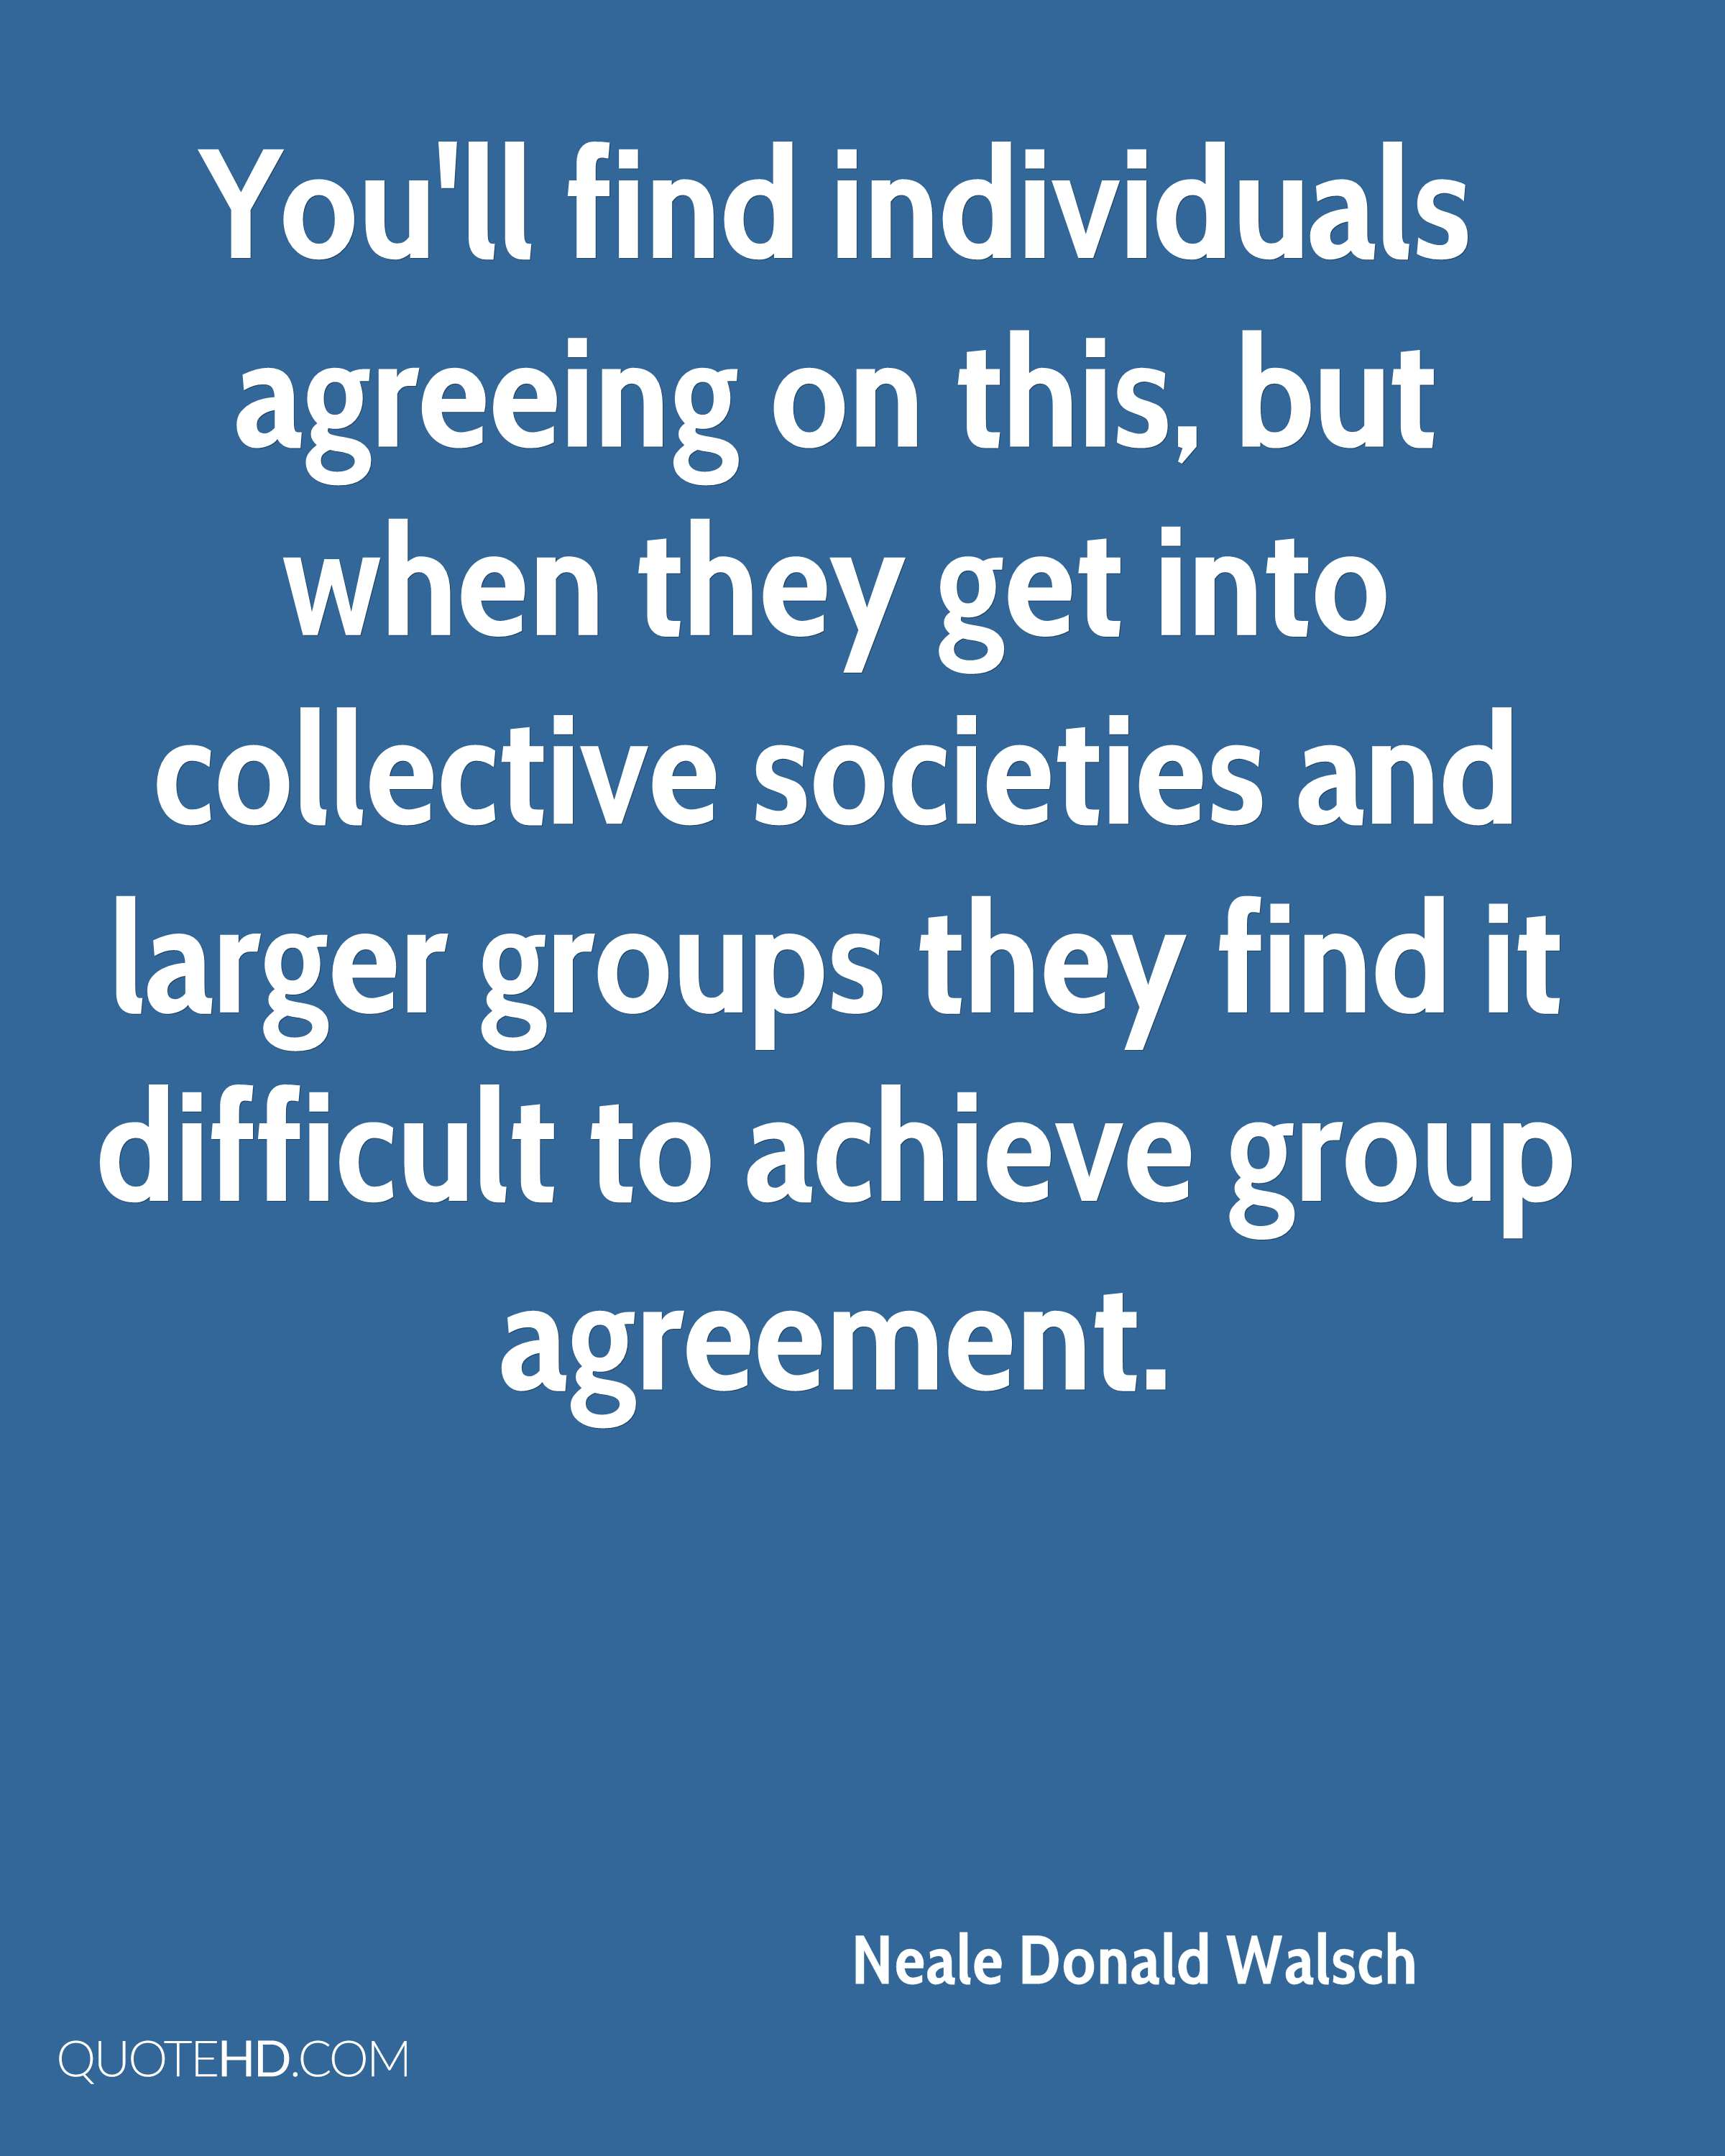 You'll find individuals agreeing on this, but when they get into collective societies and larger groups they find it difficult to achieve group agreement.